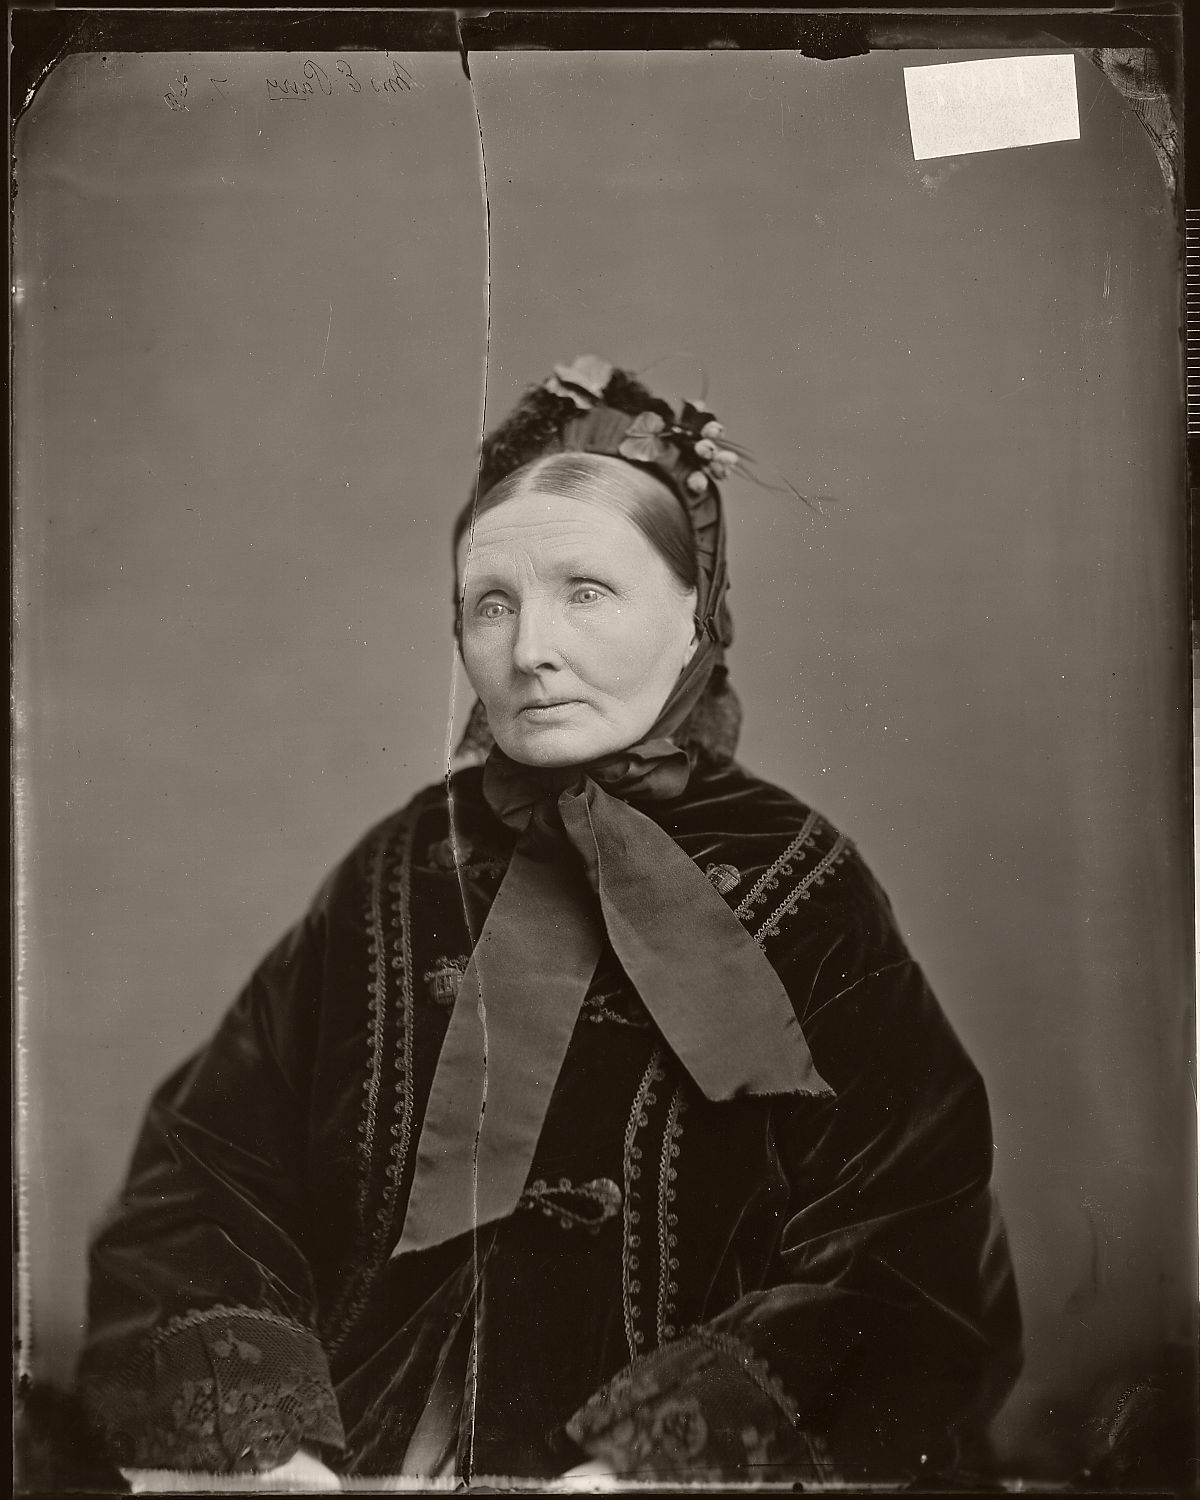 Photo by by Mathew Brady (1863)